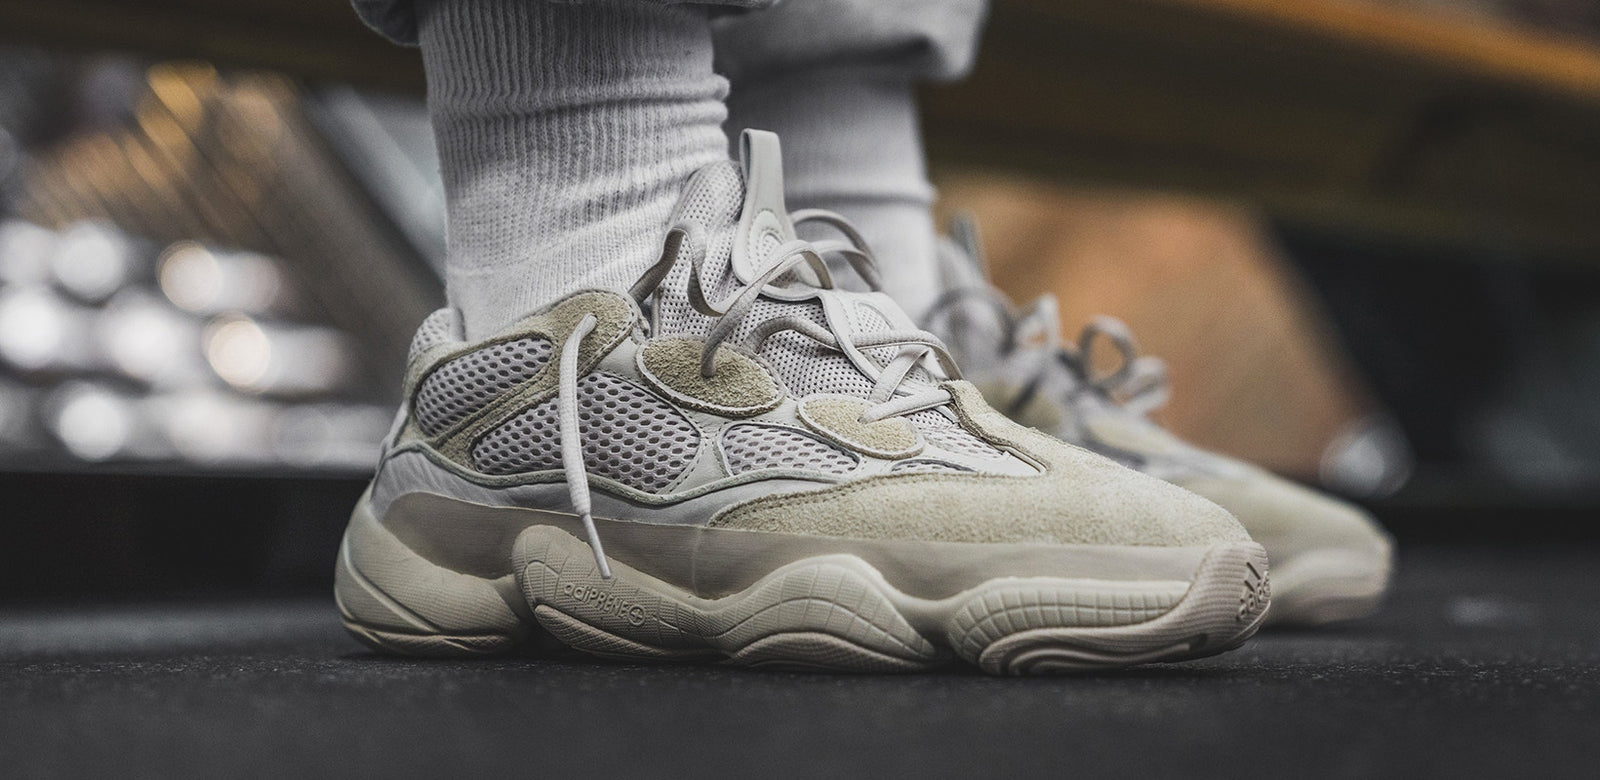 0abddfd03 The High-End Clunky Sneaker Trend of 2018 - Fizzm